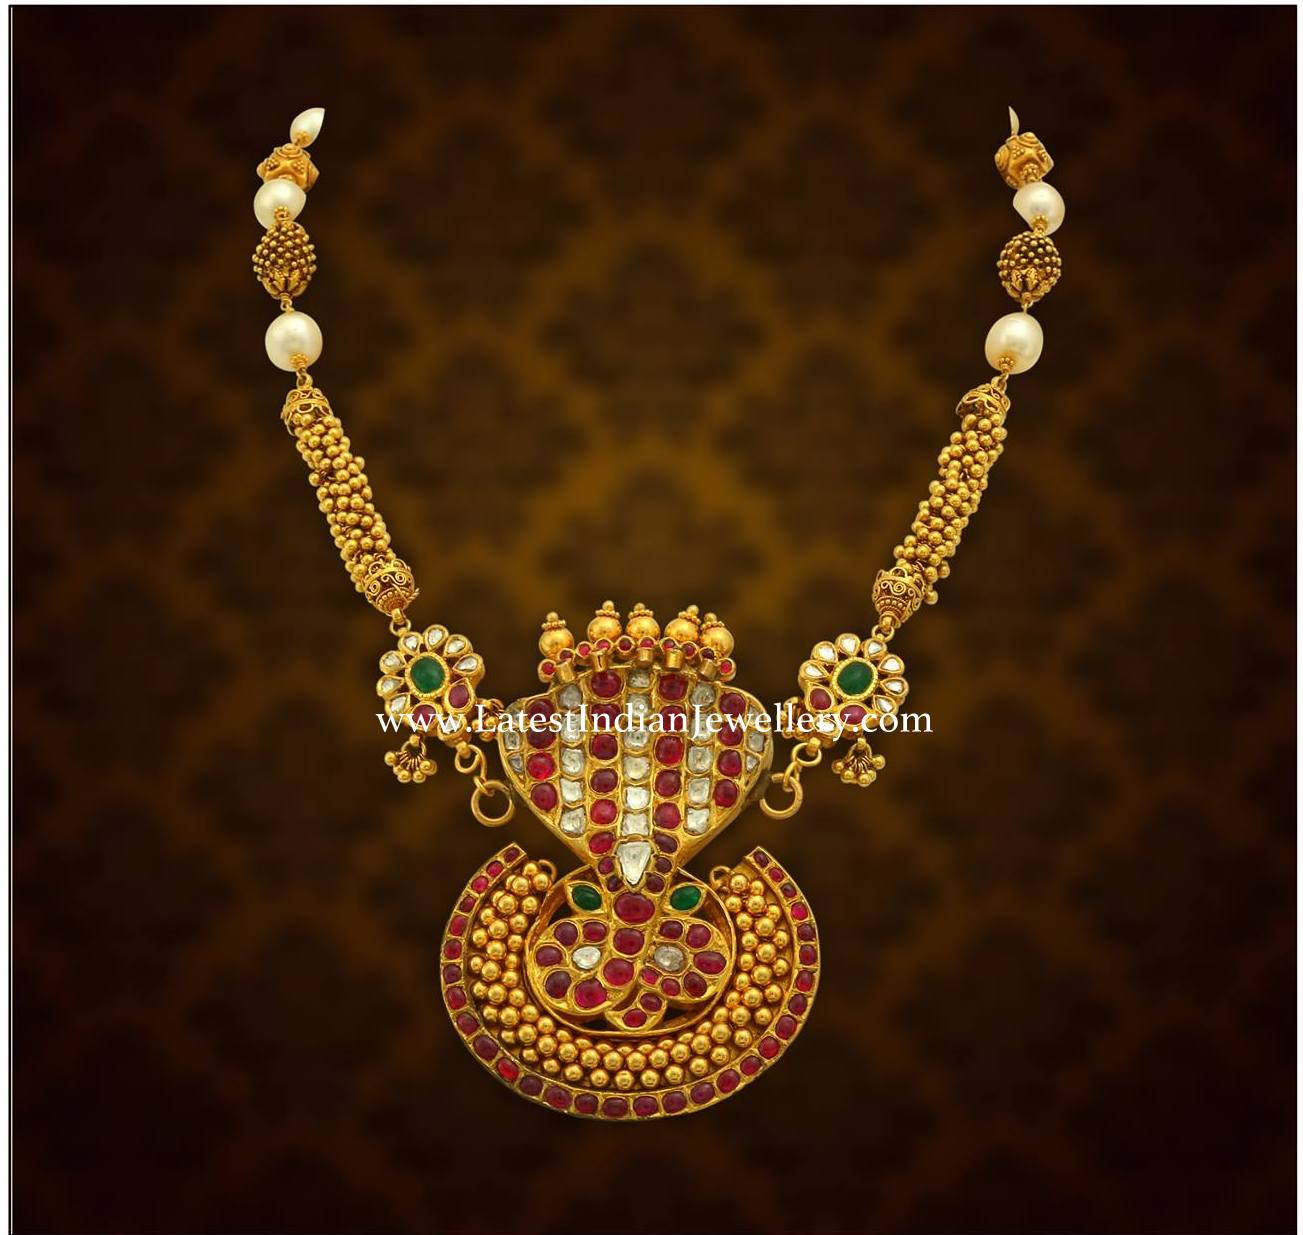 Naga Necklace - Michael Backman Ltd |Naga Jewelry